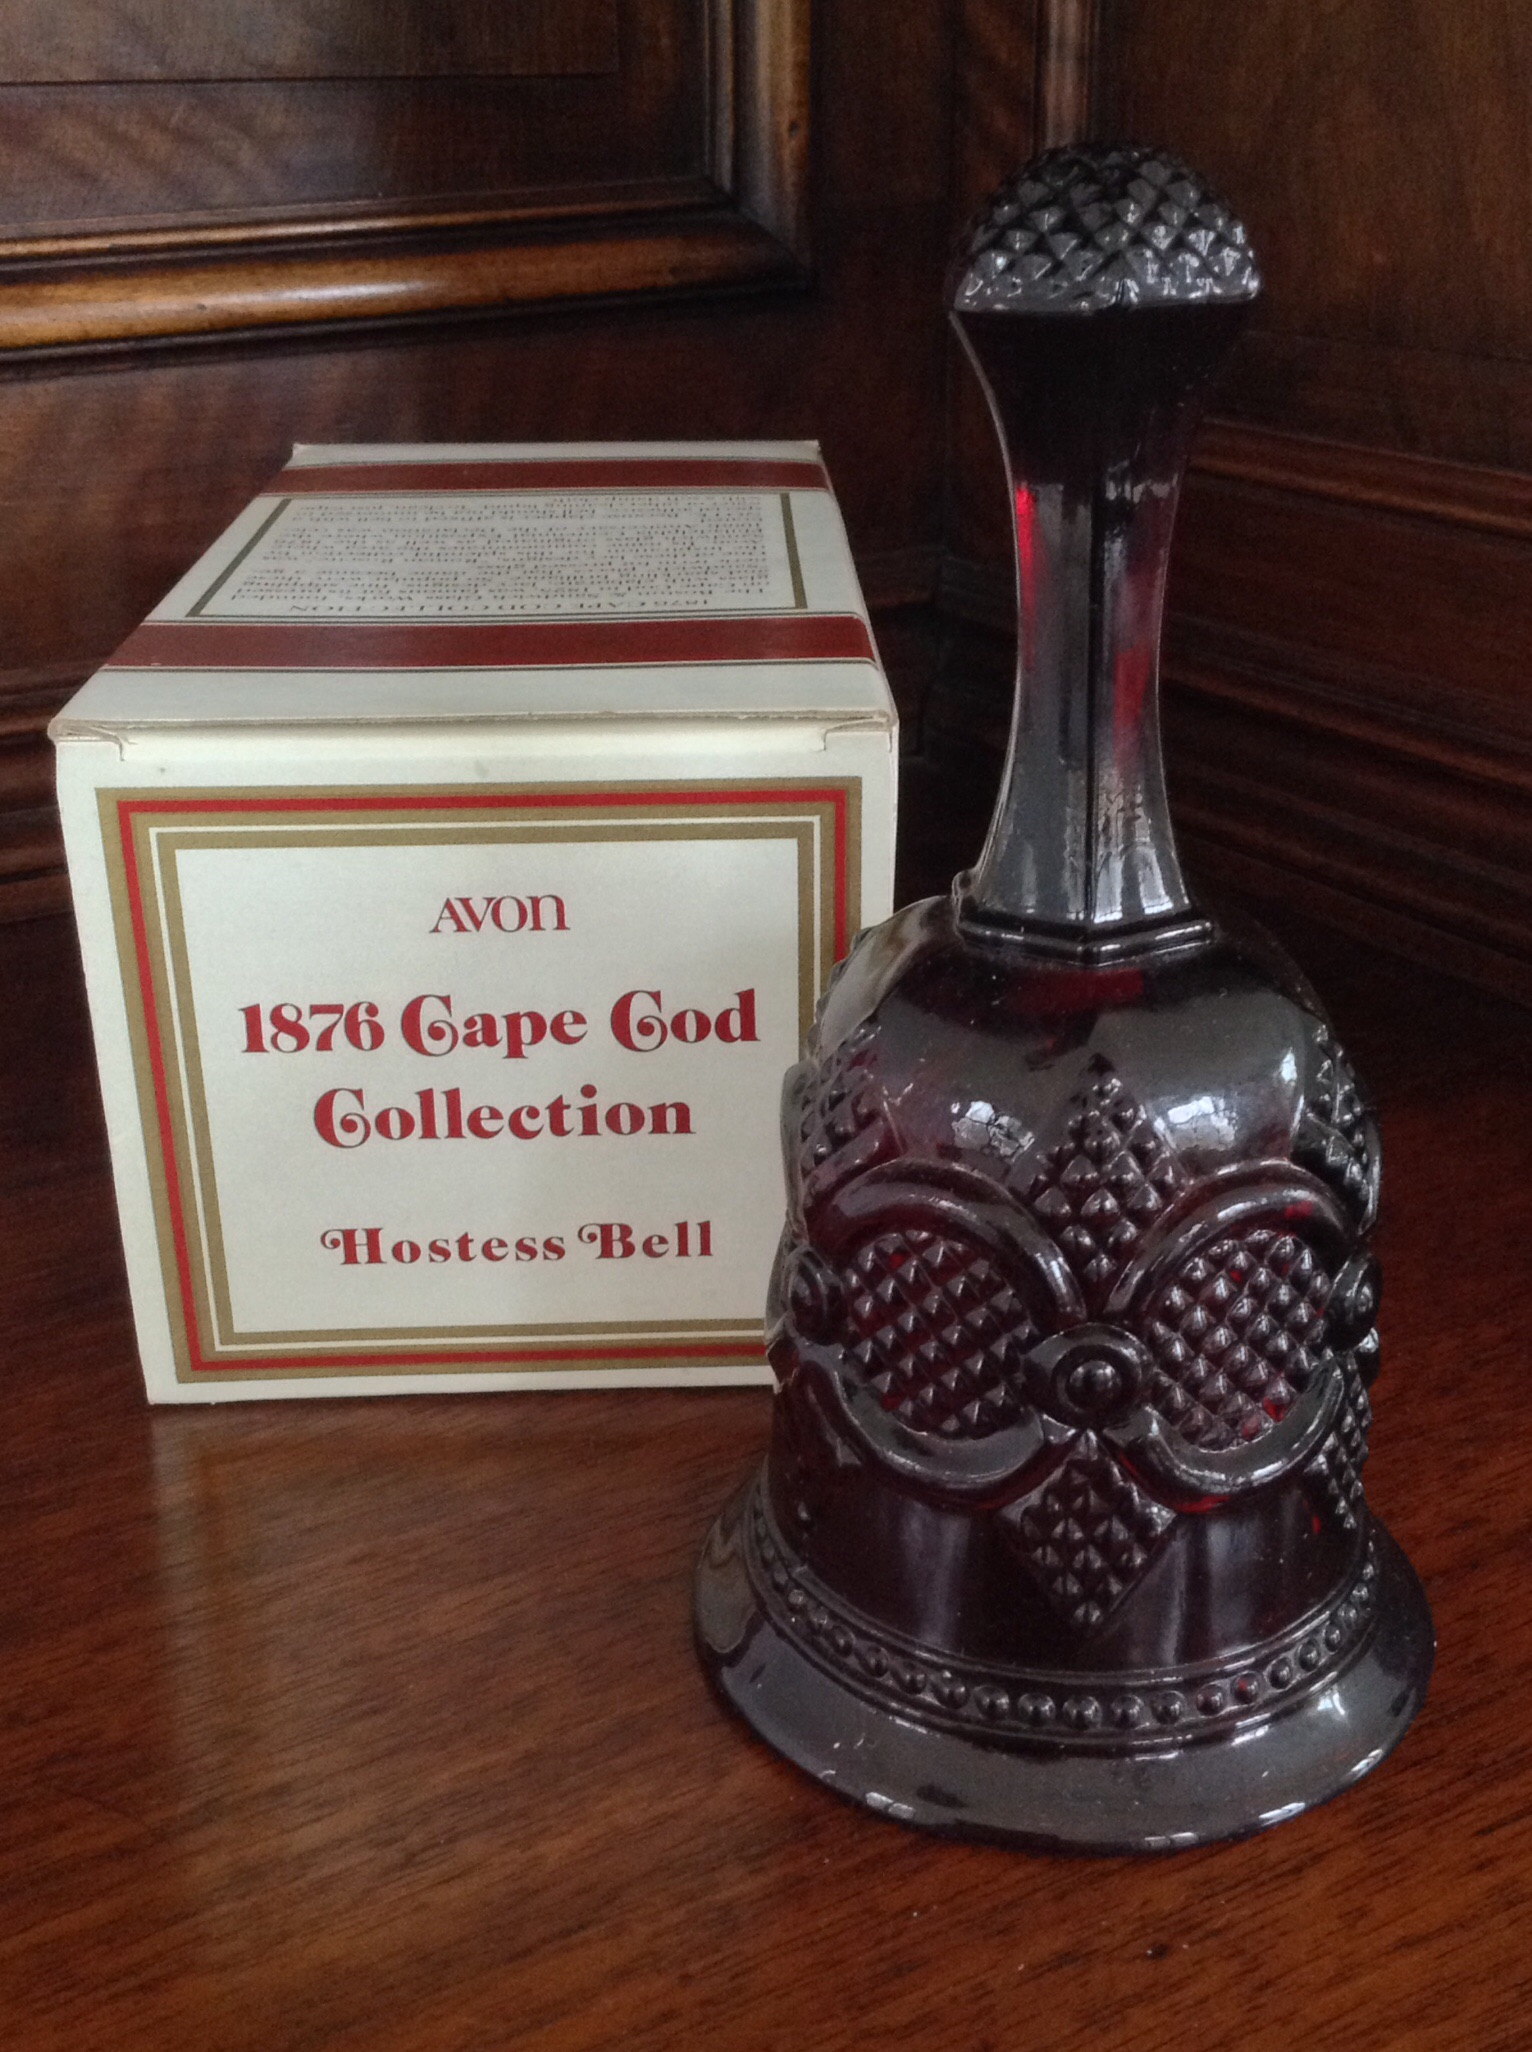 Avon 1876 Cape Cod Collection Hostess Bell